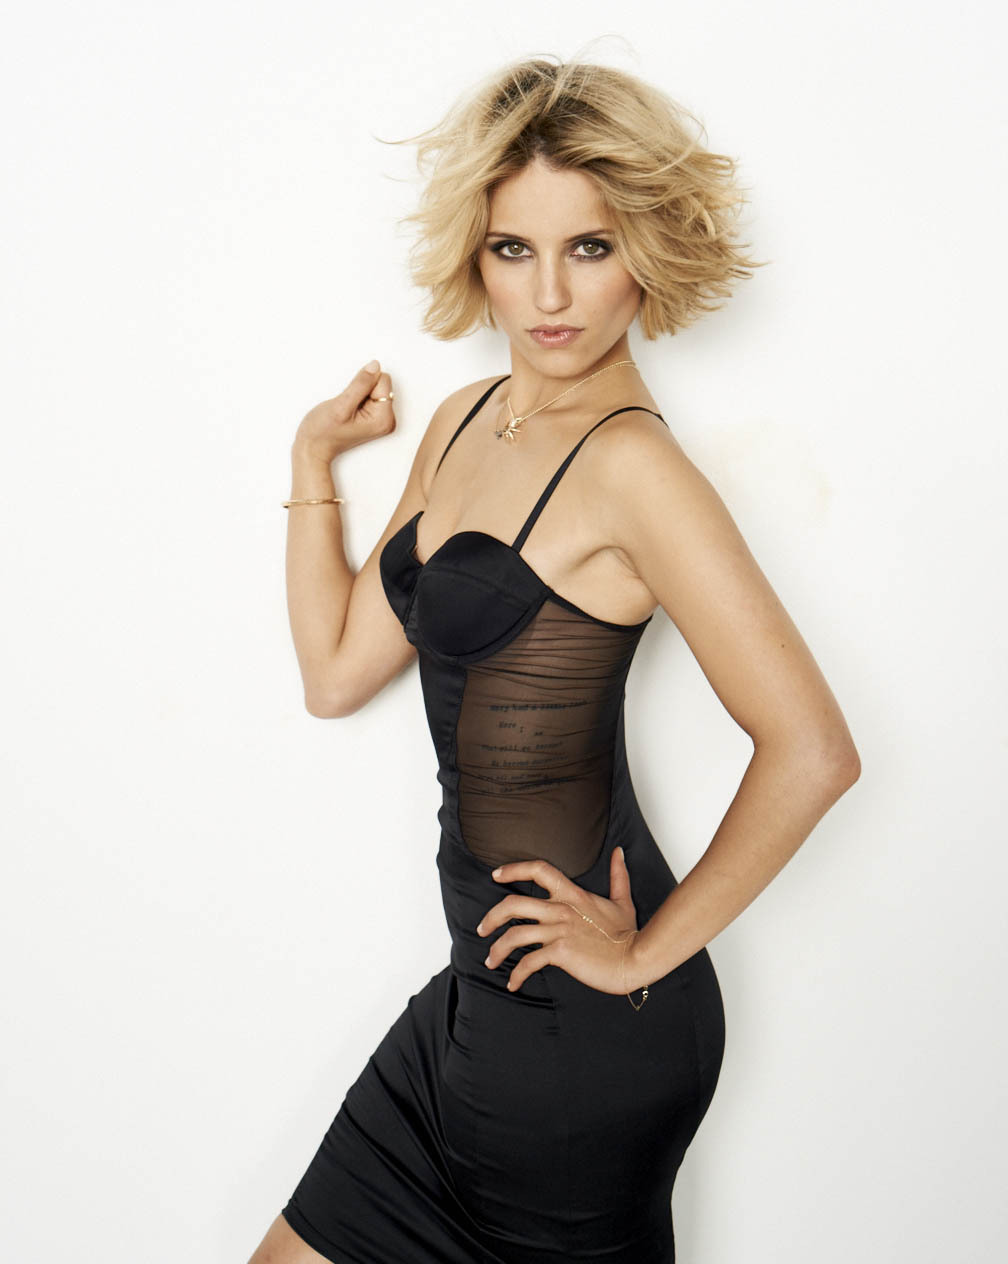 Dianna Agron New Cosmo Photoshoot - Dianna Agron Photo ...